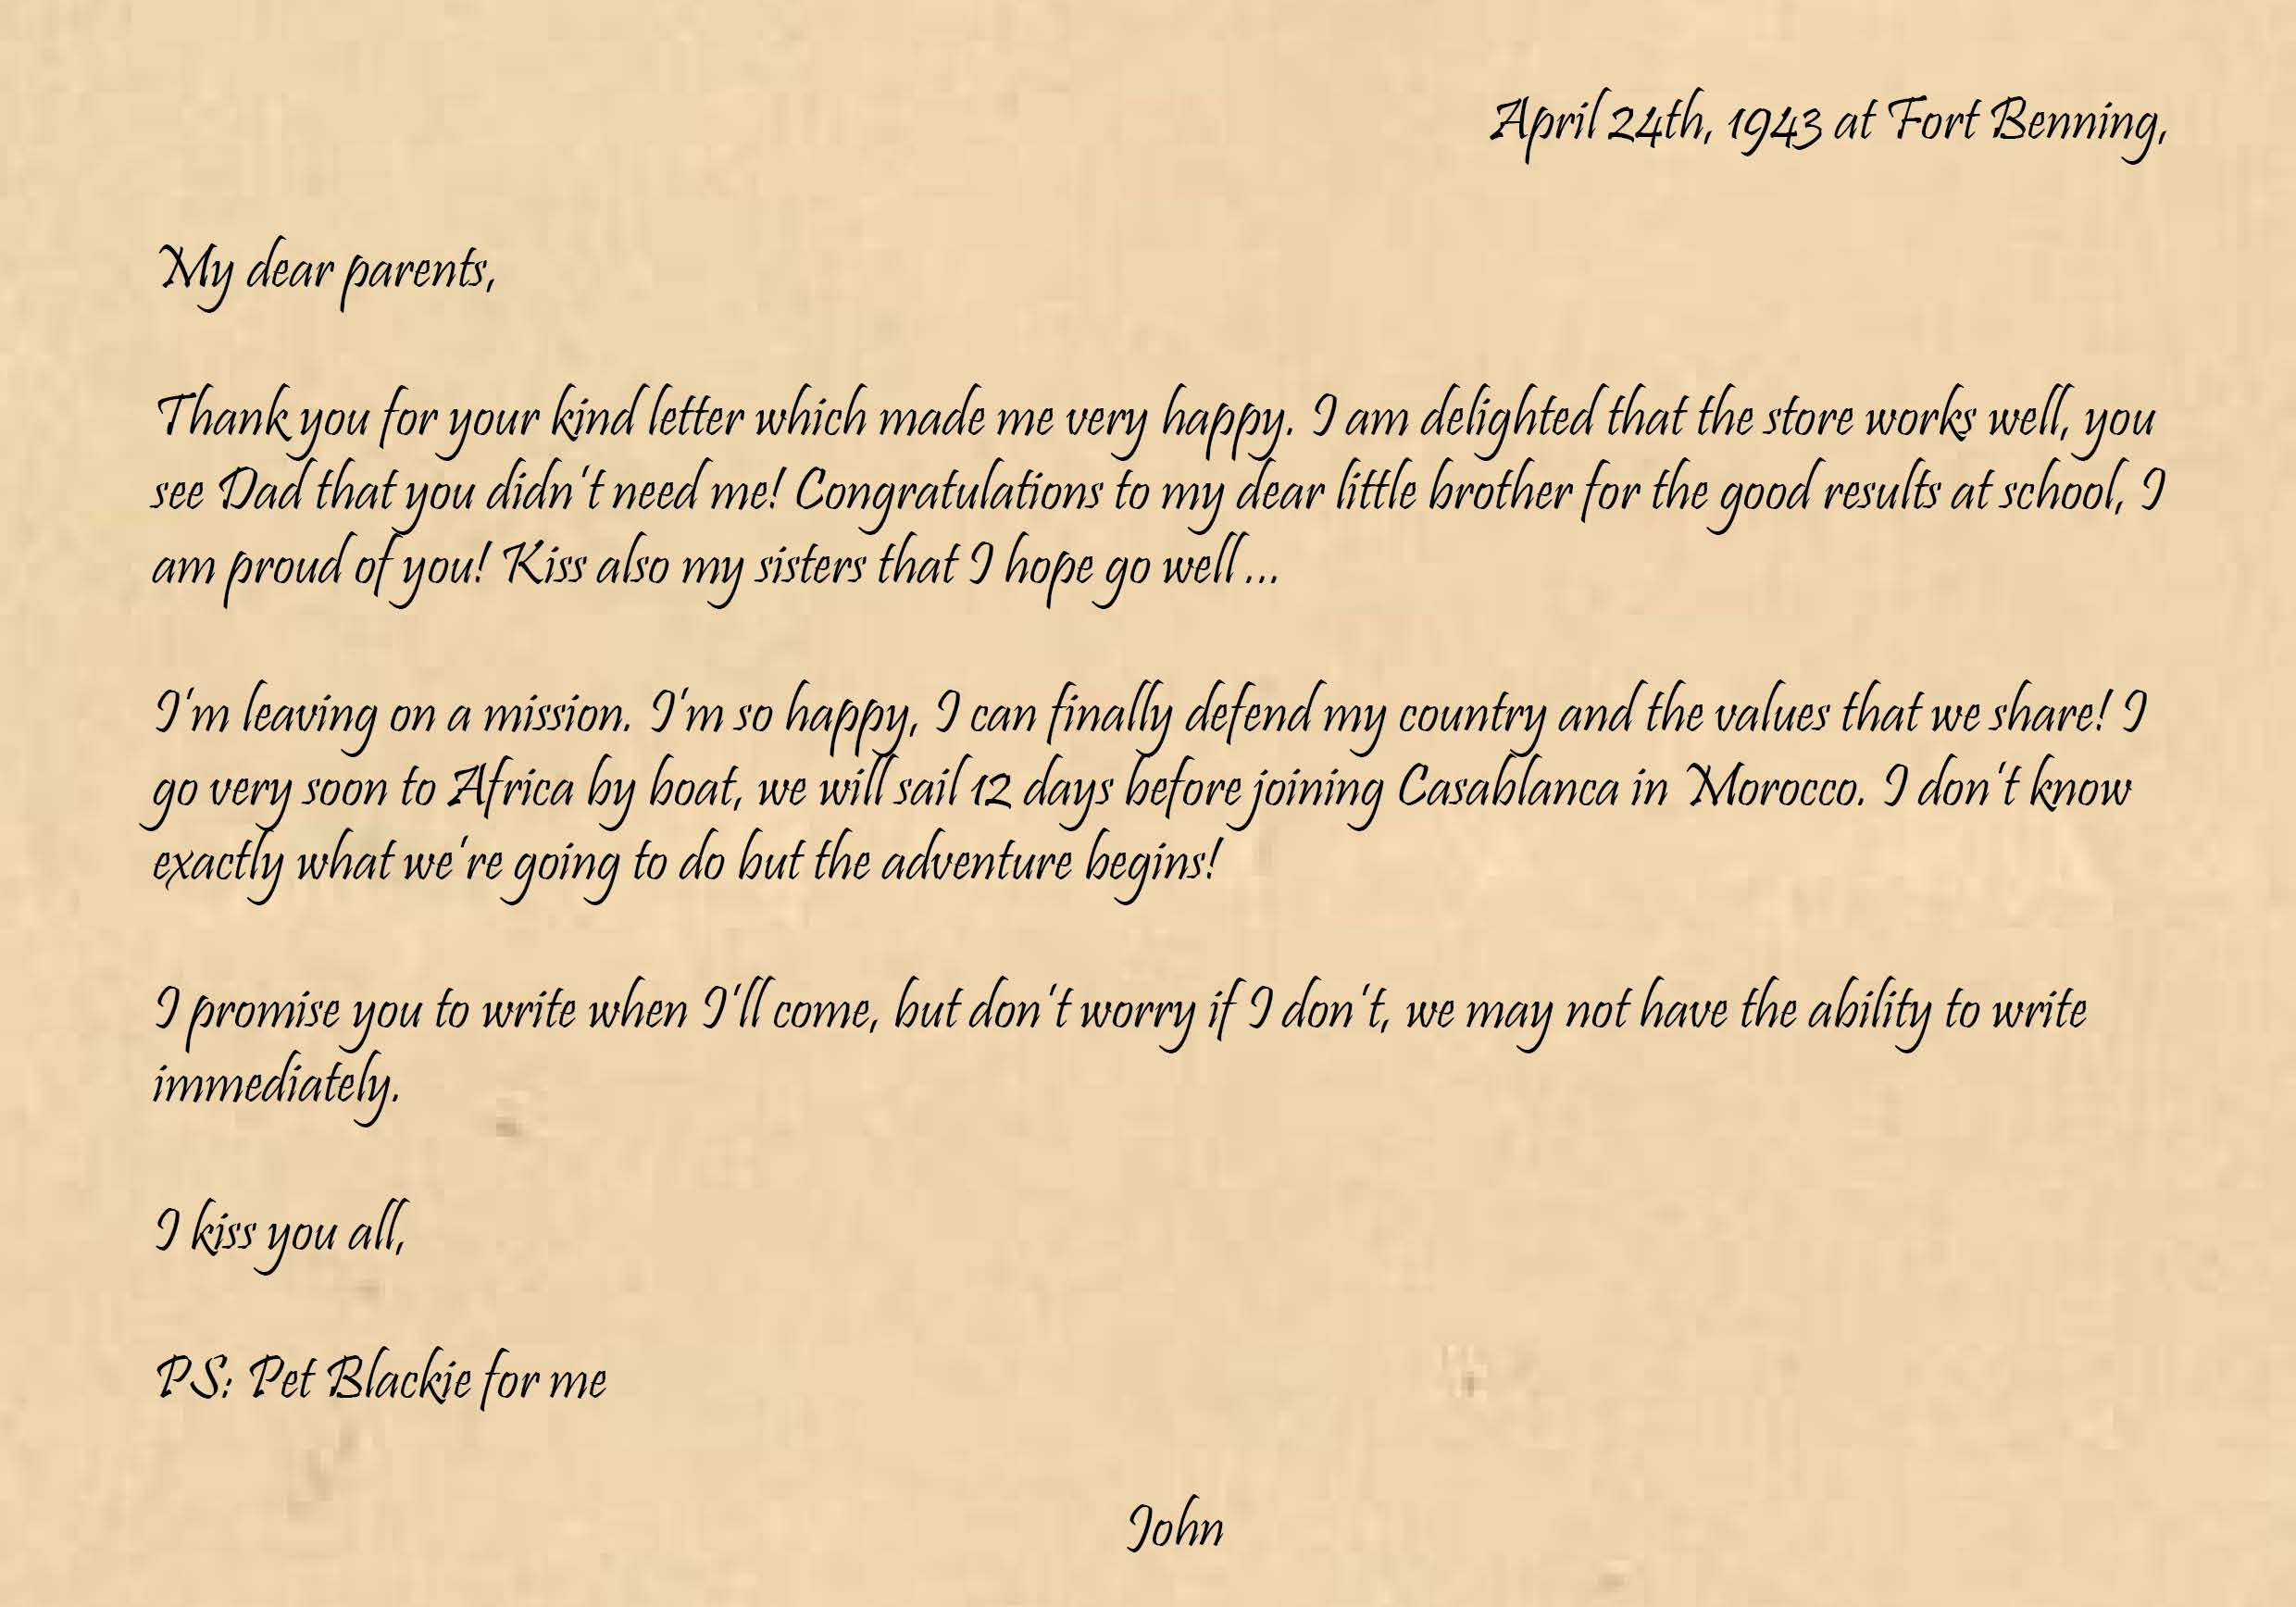 John's letter for his parents